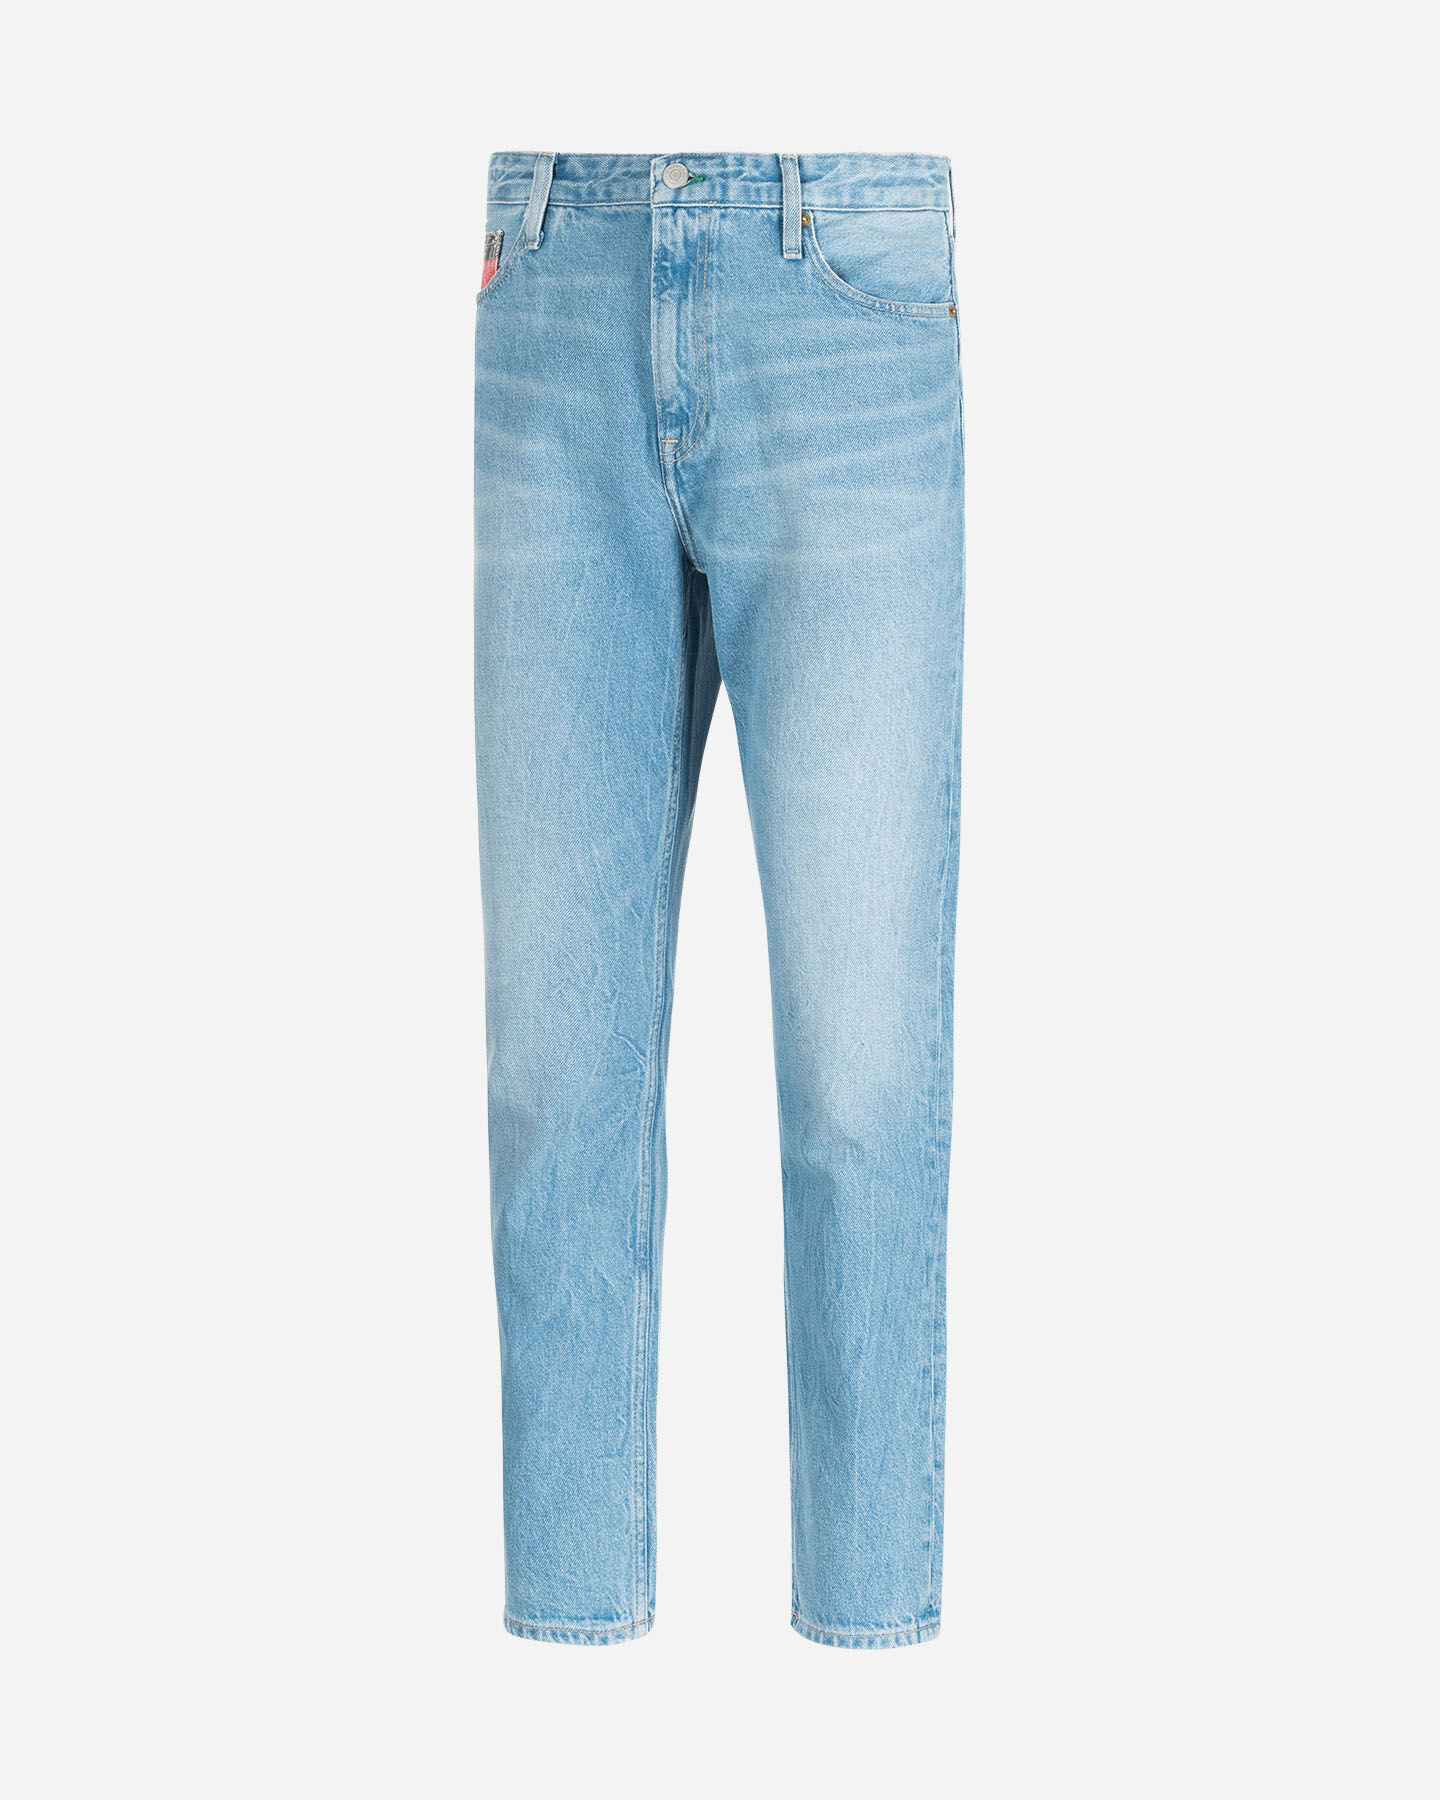 Jeans TOMMY HILFIGER DAD STRAIGHT M S4082066 scatto 3